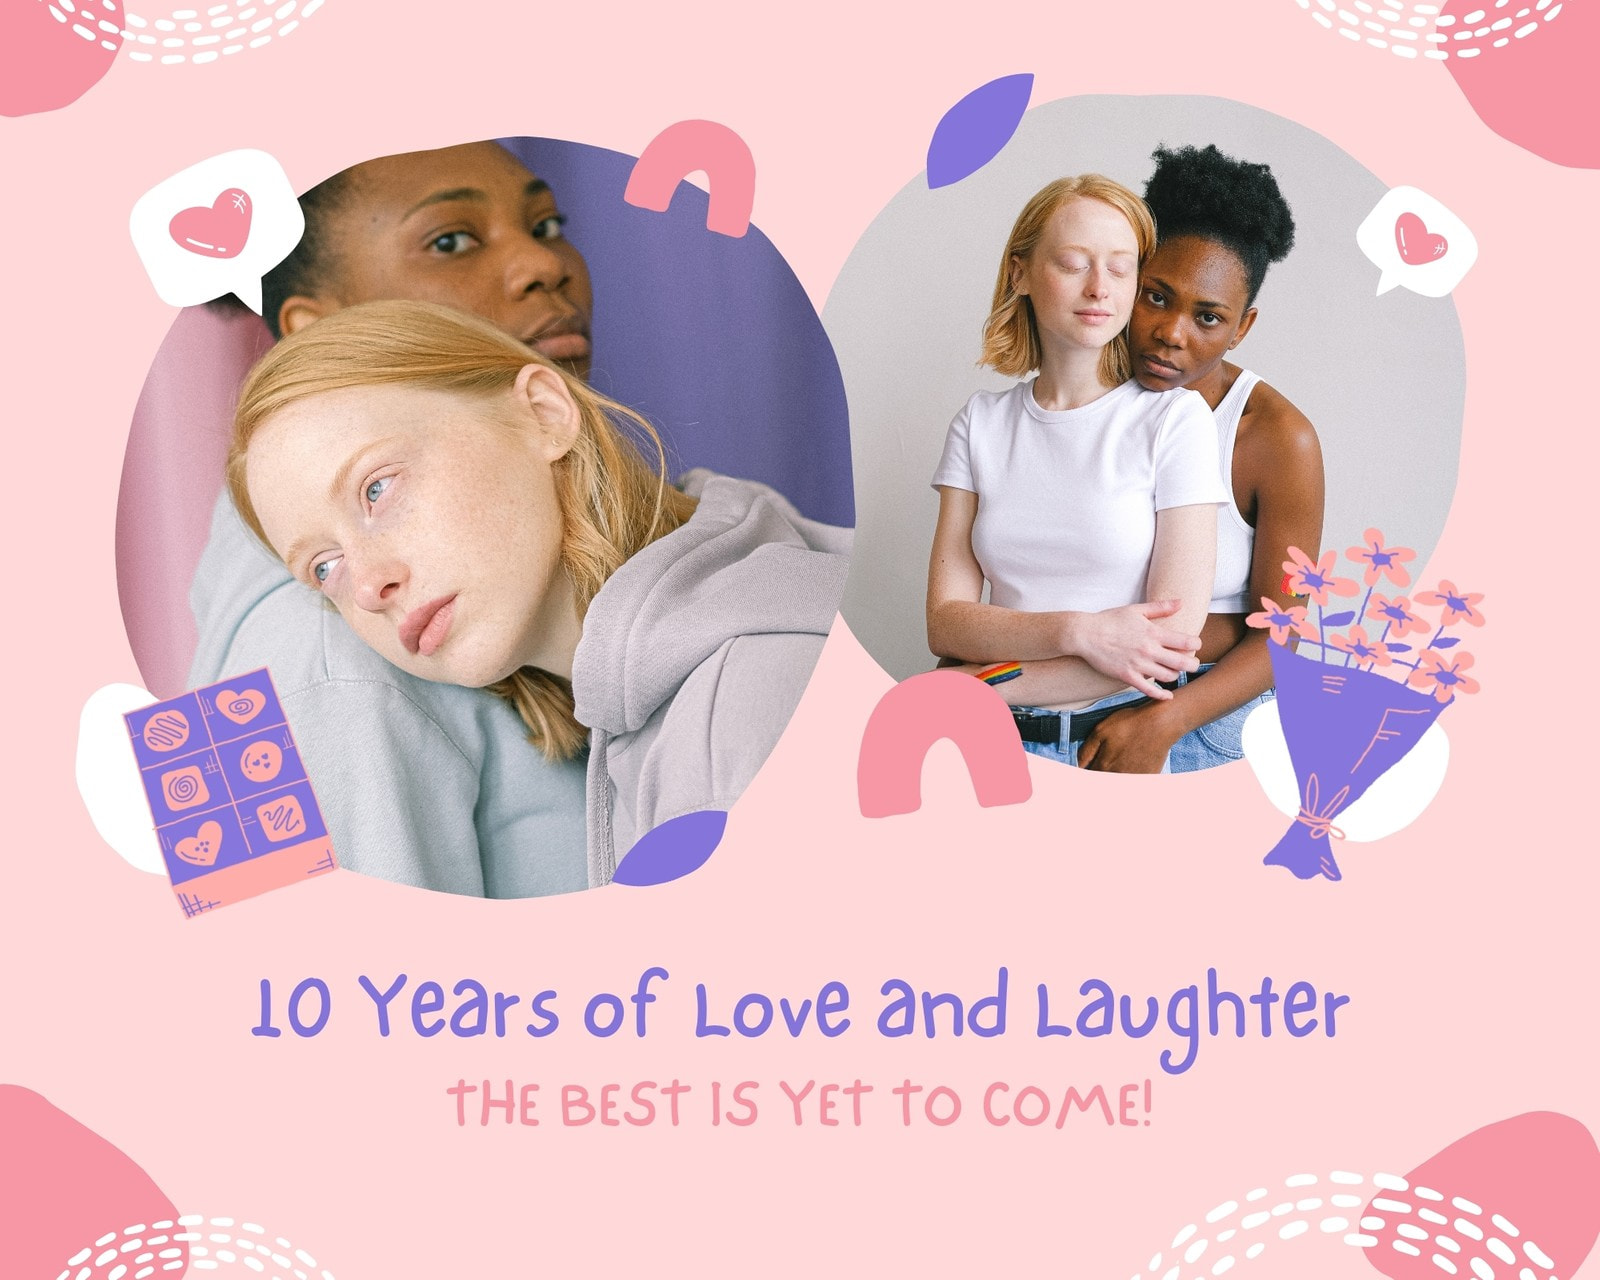 Pink and Purple Organic Illustrations Couple Love Animated Photo Collage